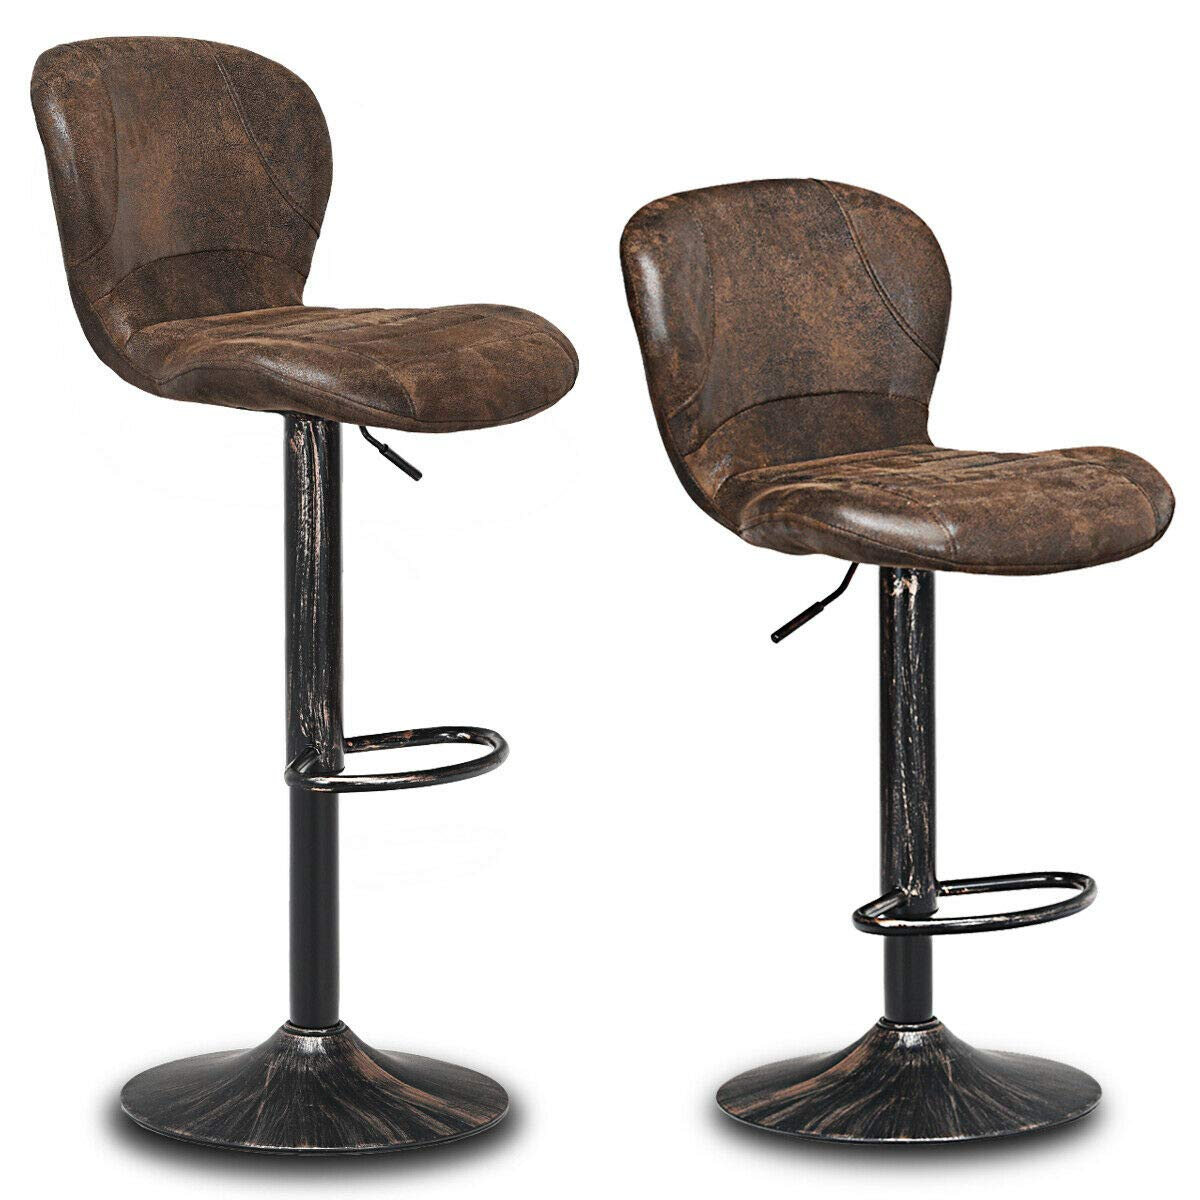 COSTWAY Vintage Bar Stool, Set of 2 Armless Hydraulic Lift Adjustable Seat Height with Footrest, PU Leather Cushion and Backrest for Kitchen Dining Living Bistro Pub Counter Back Barstool, Brown by COSTWAY